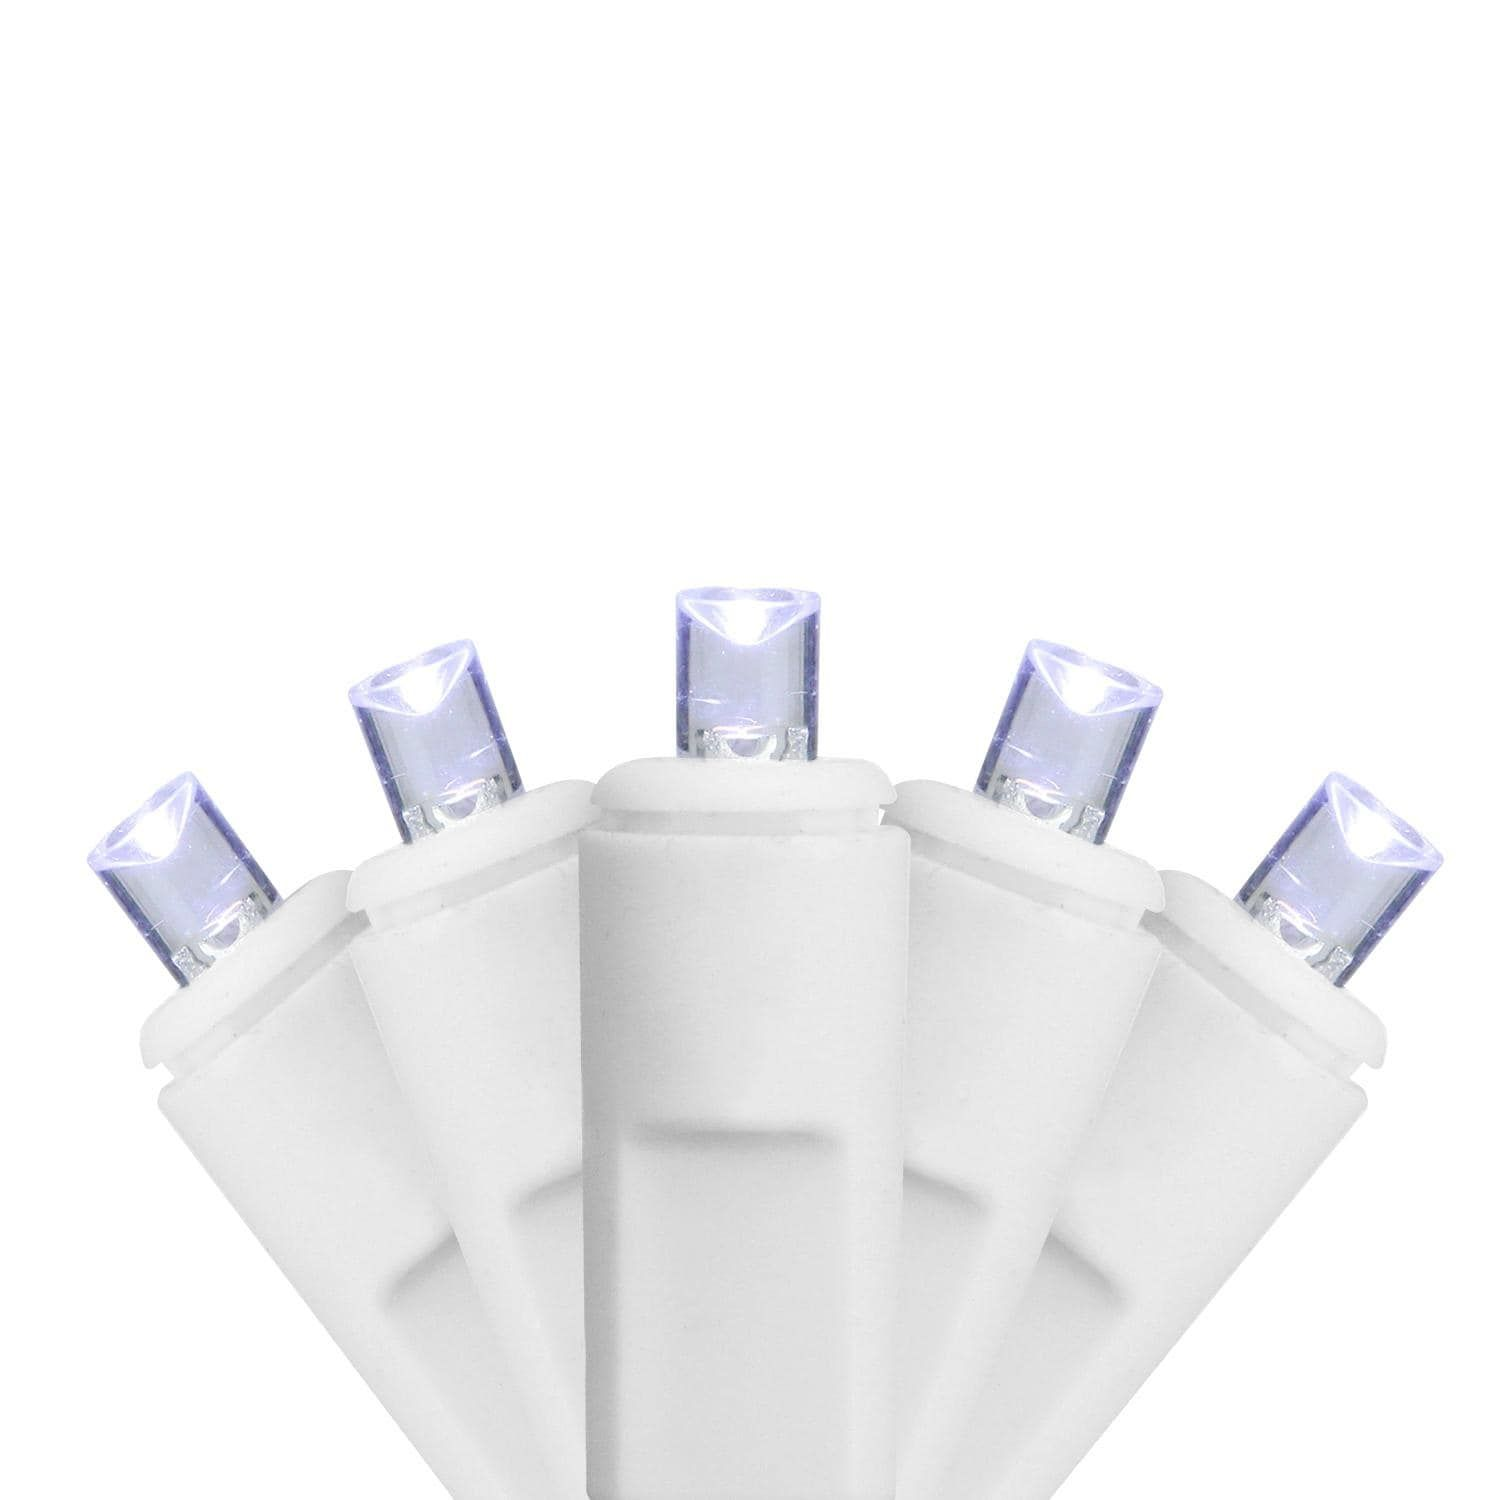 Sienna Set of 70 Cool White LED Twinkling Commercial Wide Angle ...